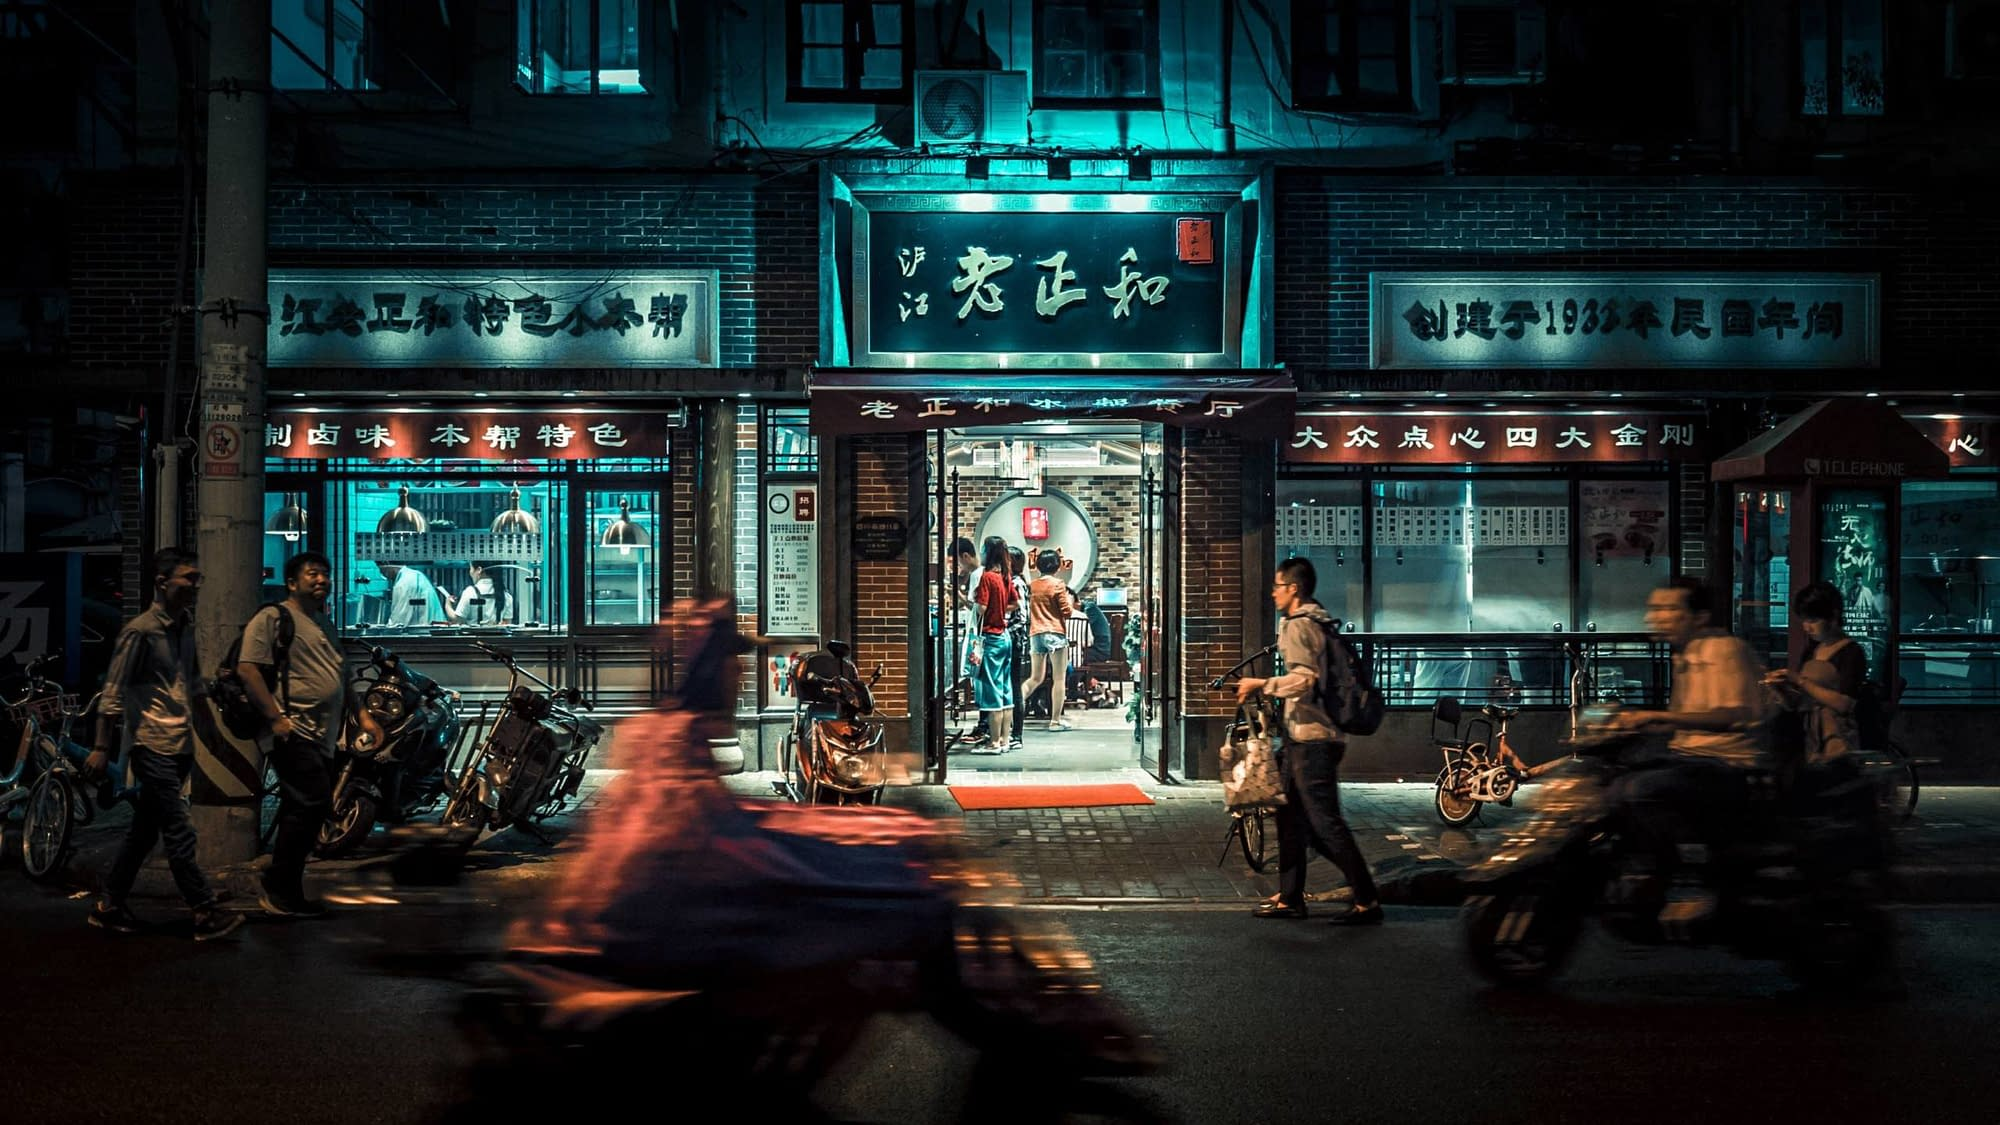 Chinese building by night